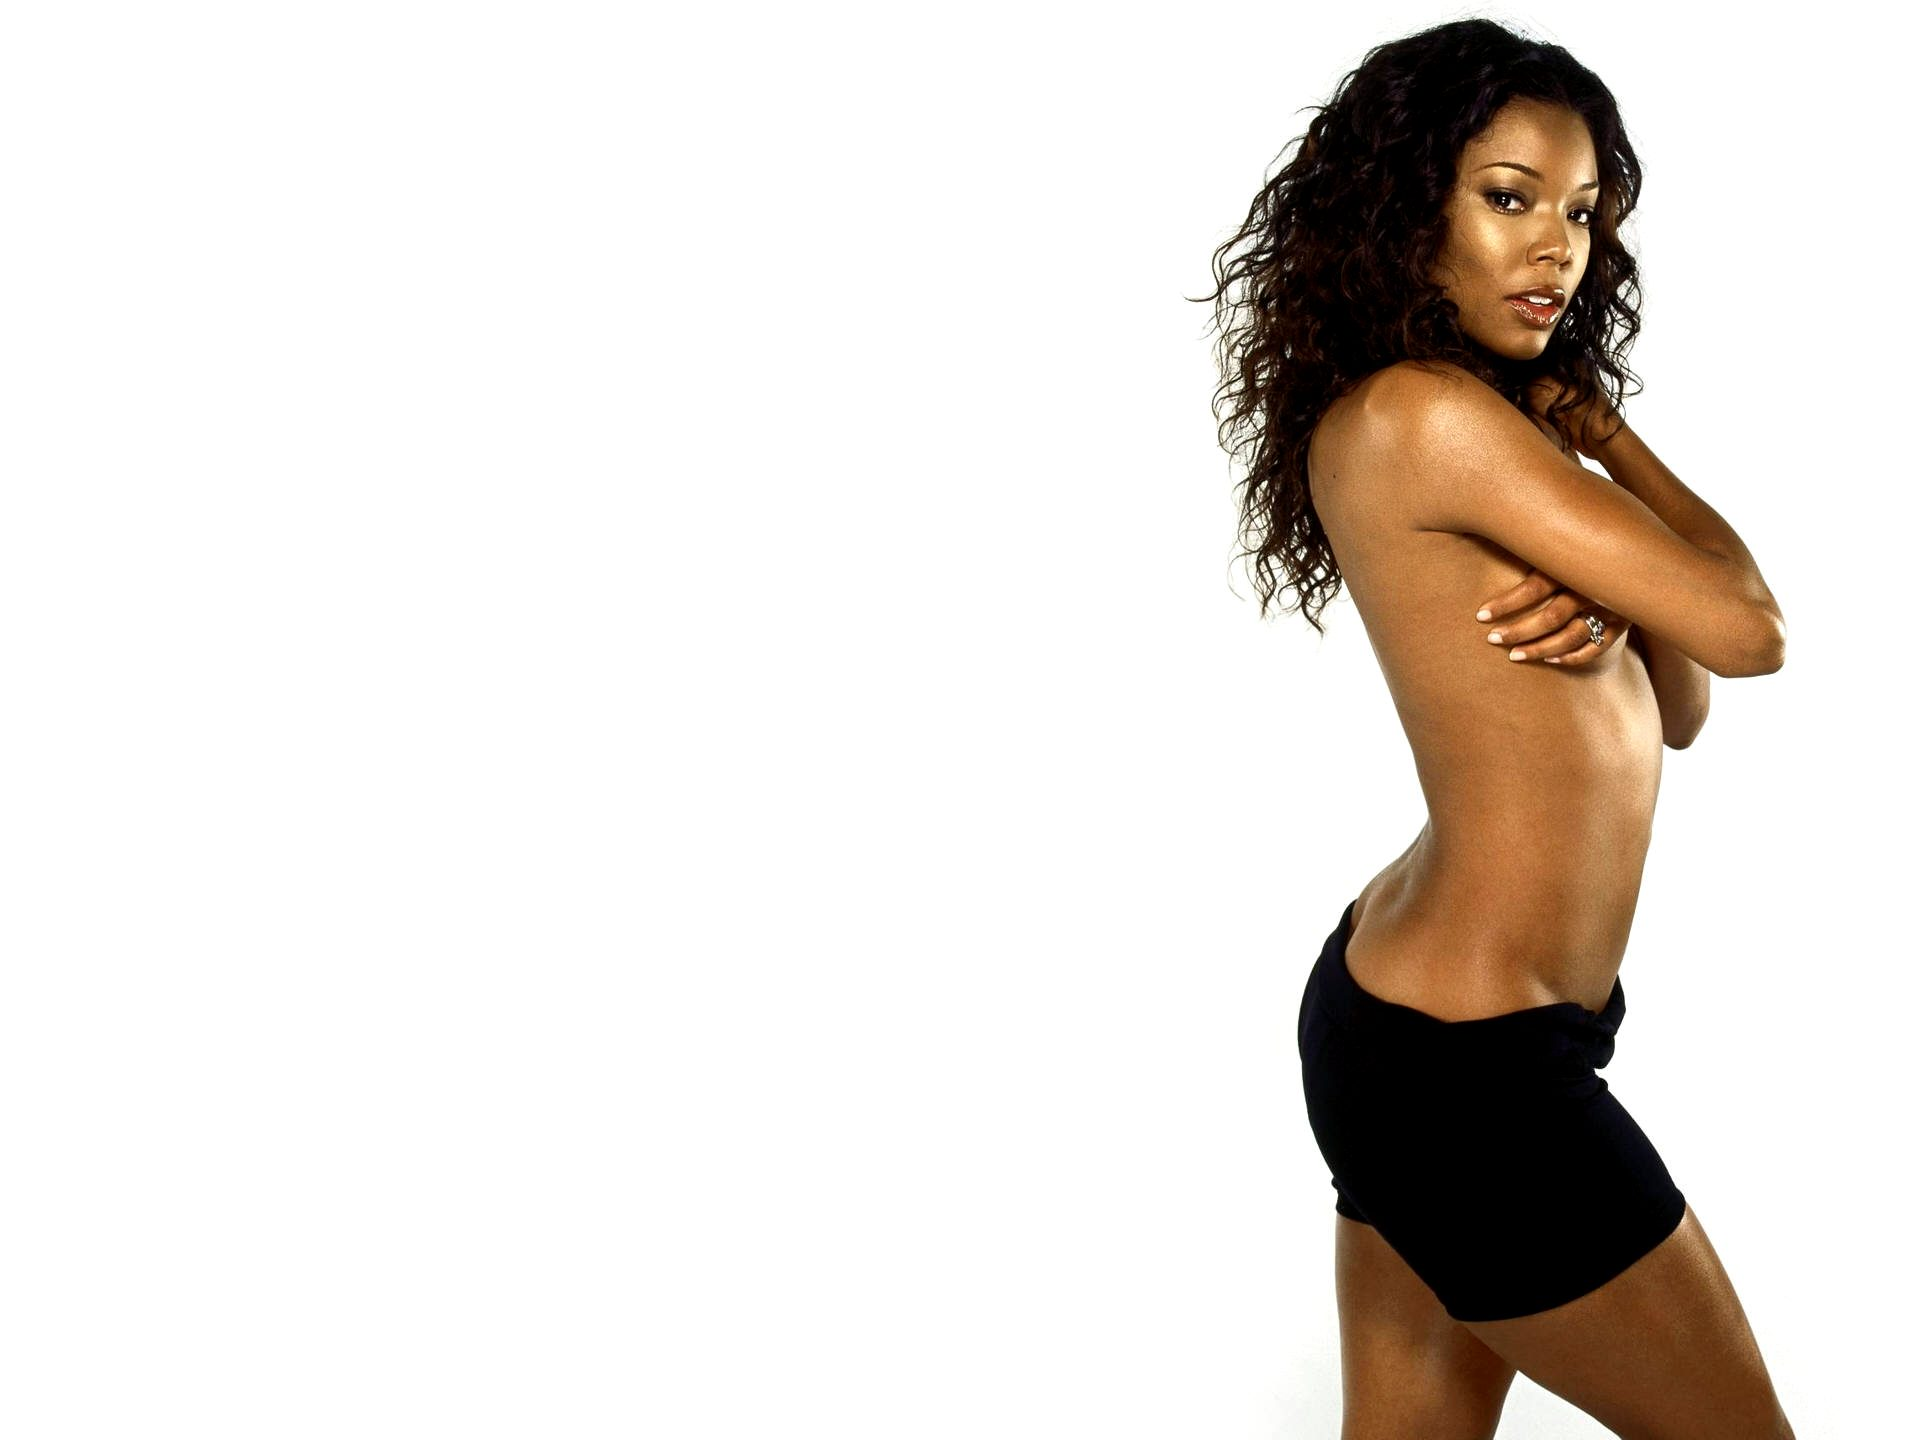 1920x1440 - Gabrielle Union Wallpapers 4